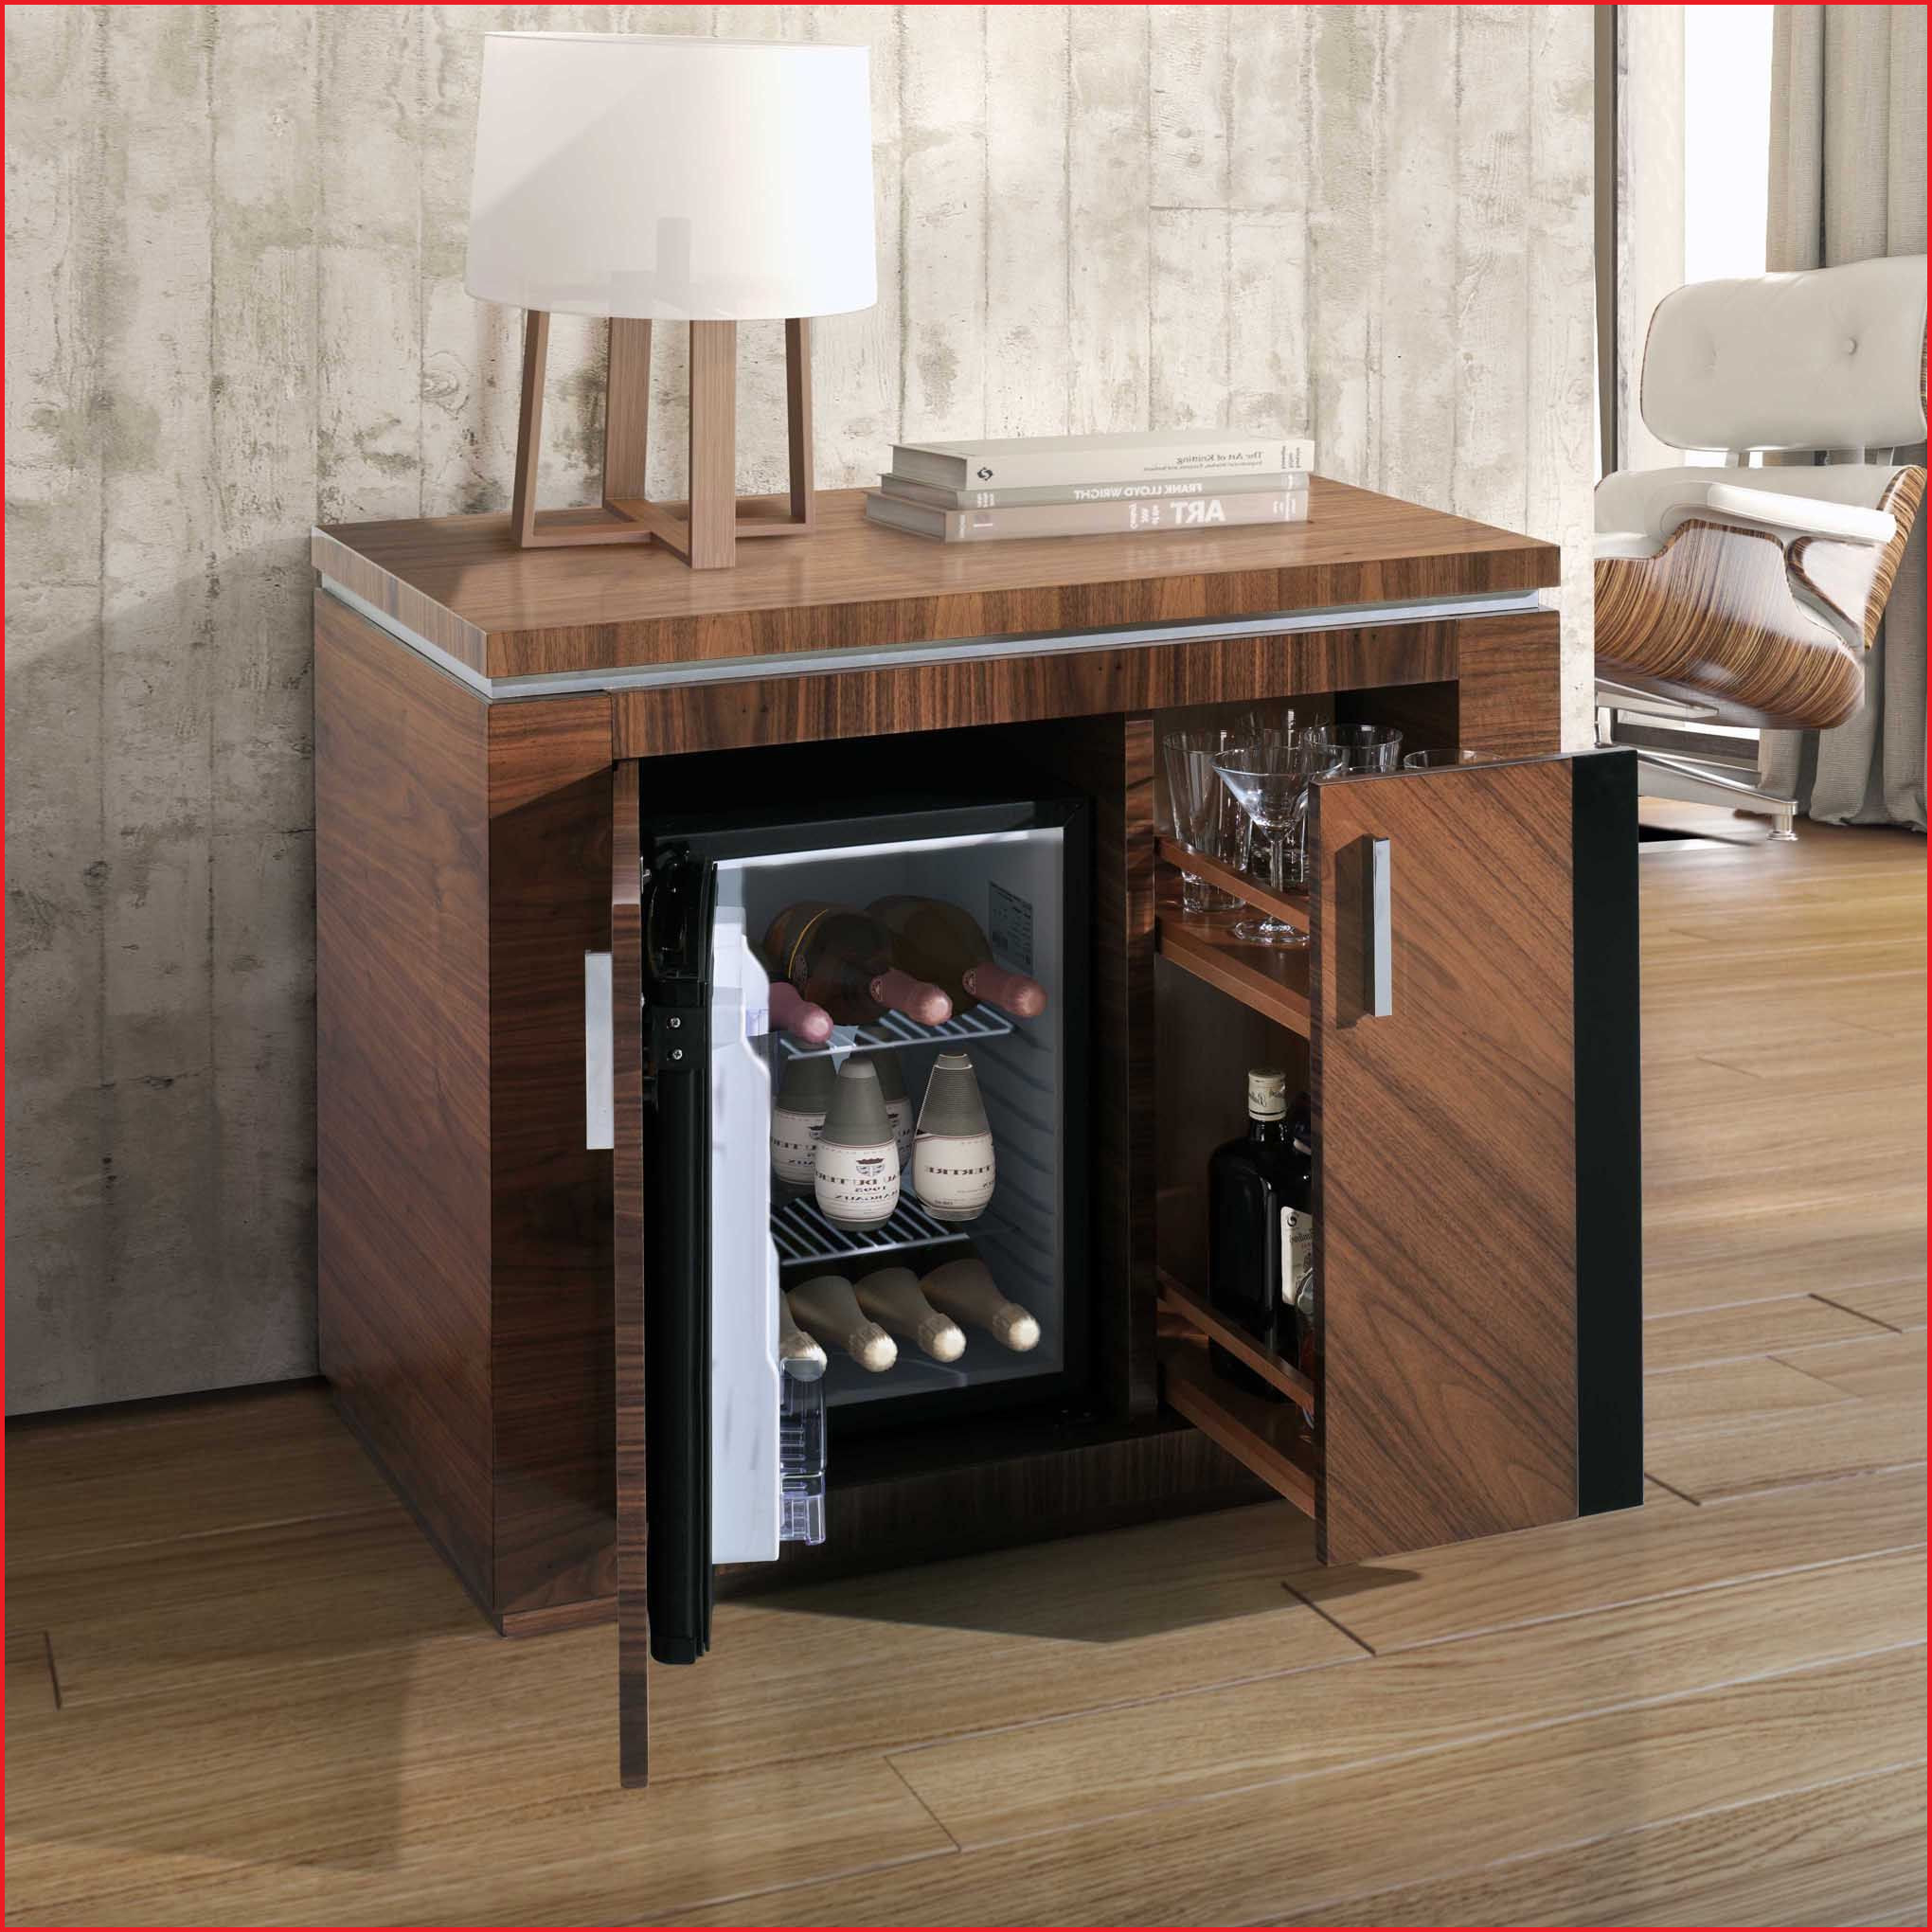 Mueble Bar Ikea Q5df Muebles Para Bar Ikea Archives Arsenalsupremo